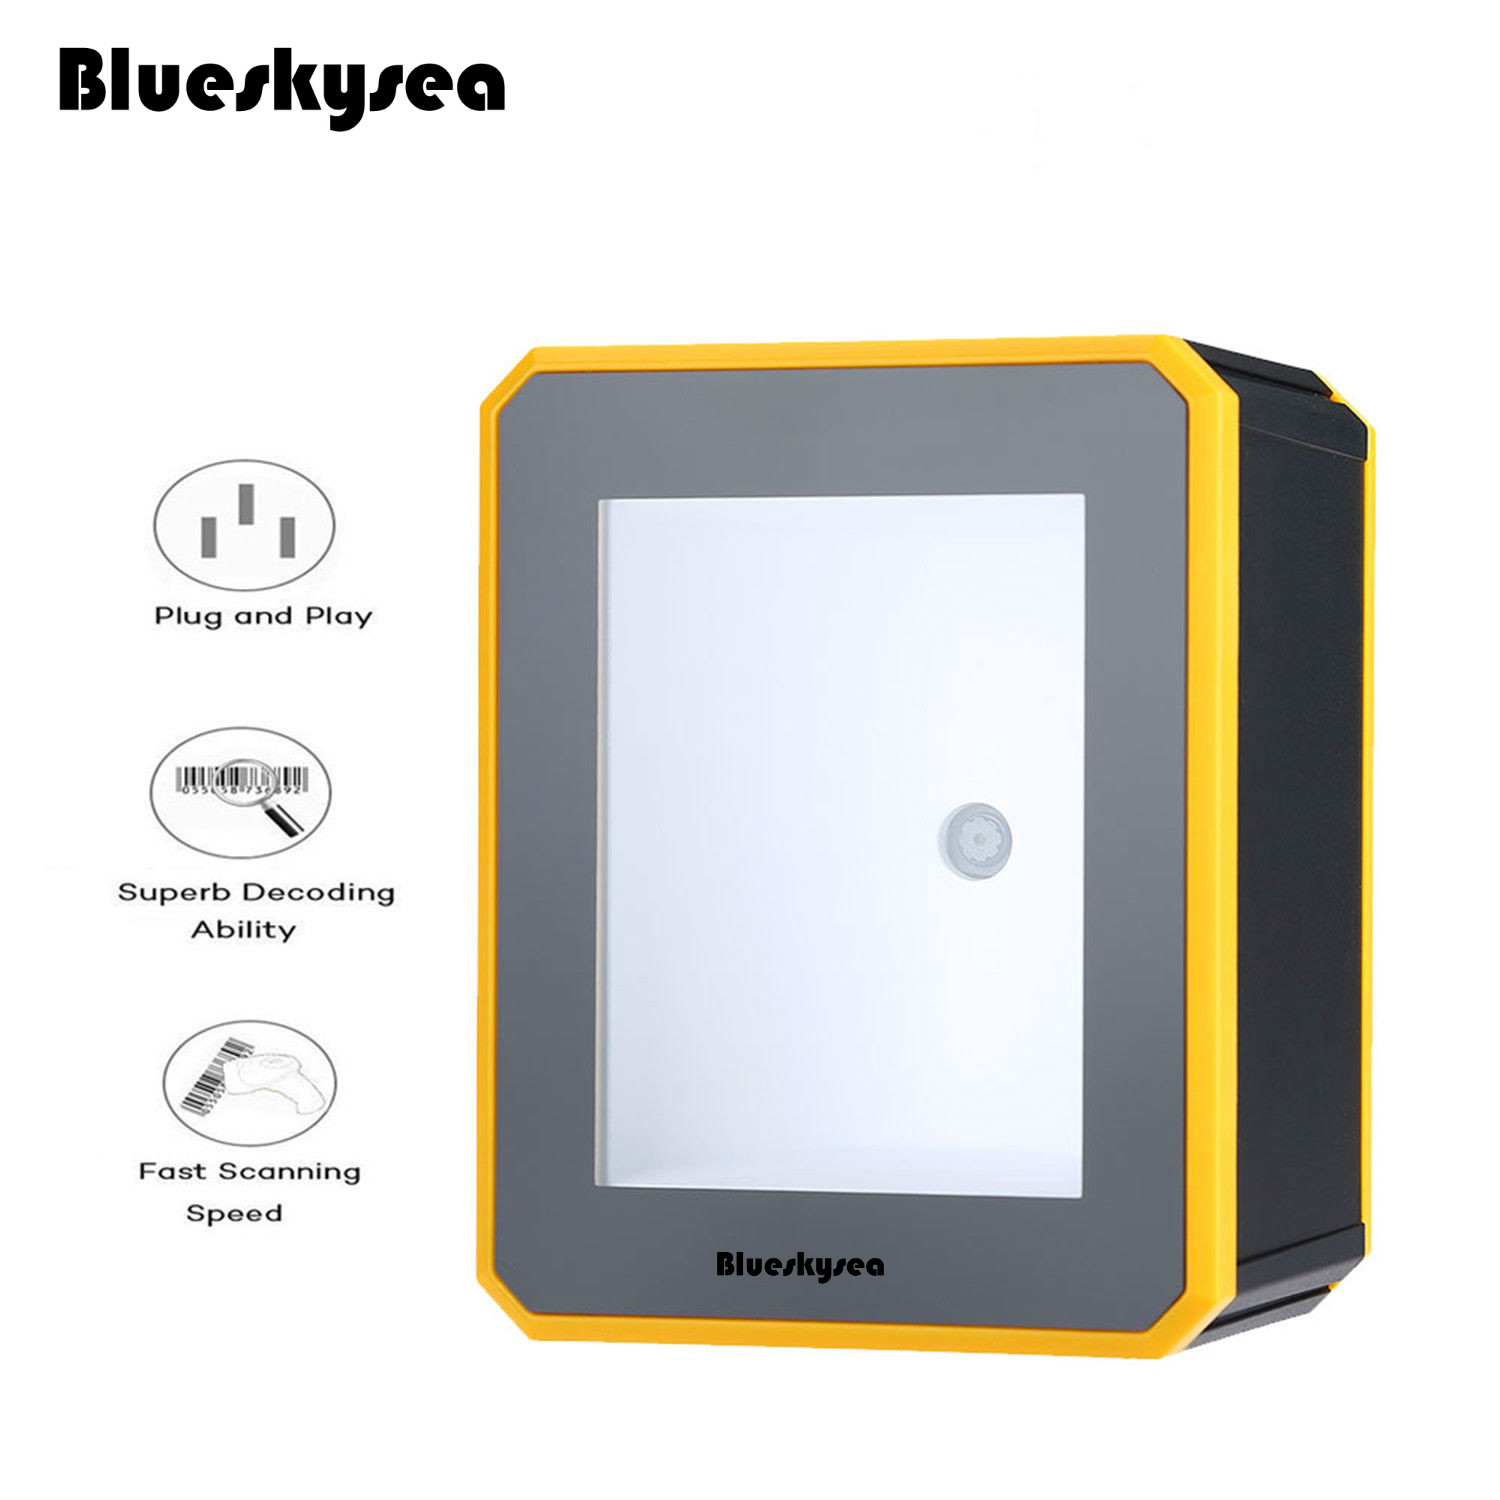 Blueskysea YK-MP2600 2D/QR Barcode Scanner Wired USB Presentation Bar Code Reader PDF417 DataMatrix Omnidirectional Code Scanner blueskysea yk wm3l 960x640 cmos 433mhz wireless bar code scaner 1d 2d qr code pdf417 scanner barcode wireless qr reader